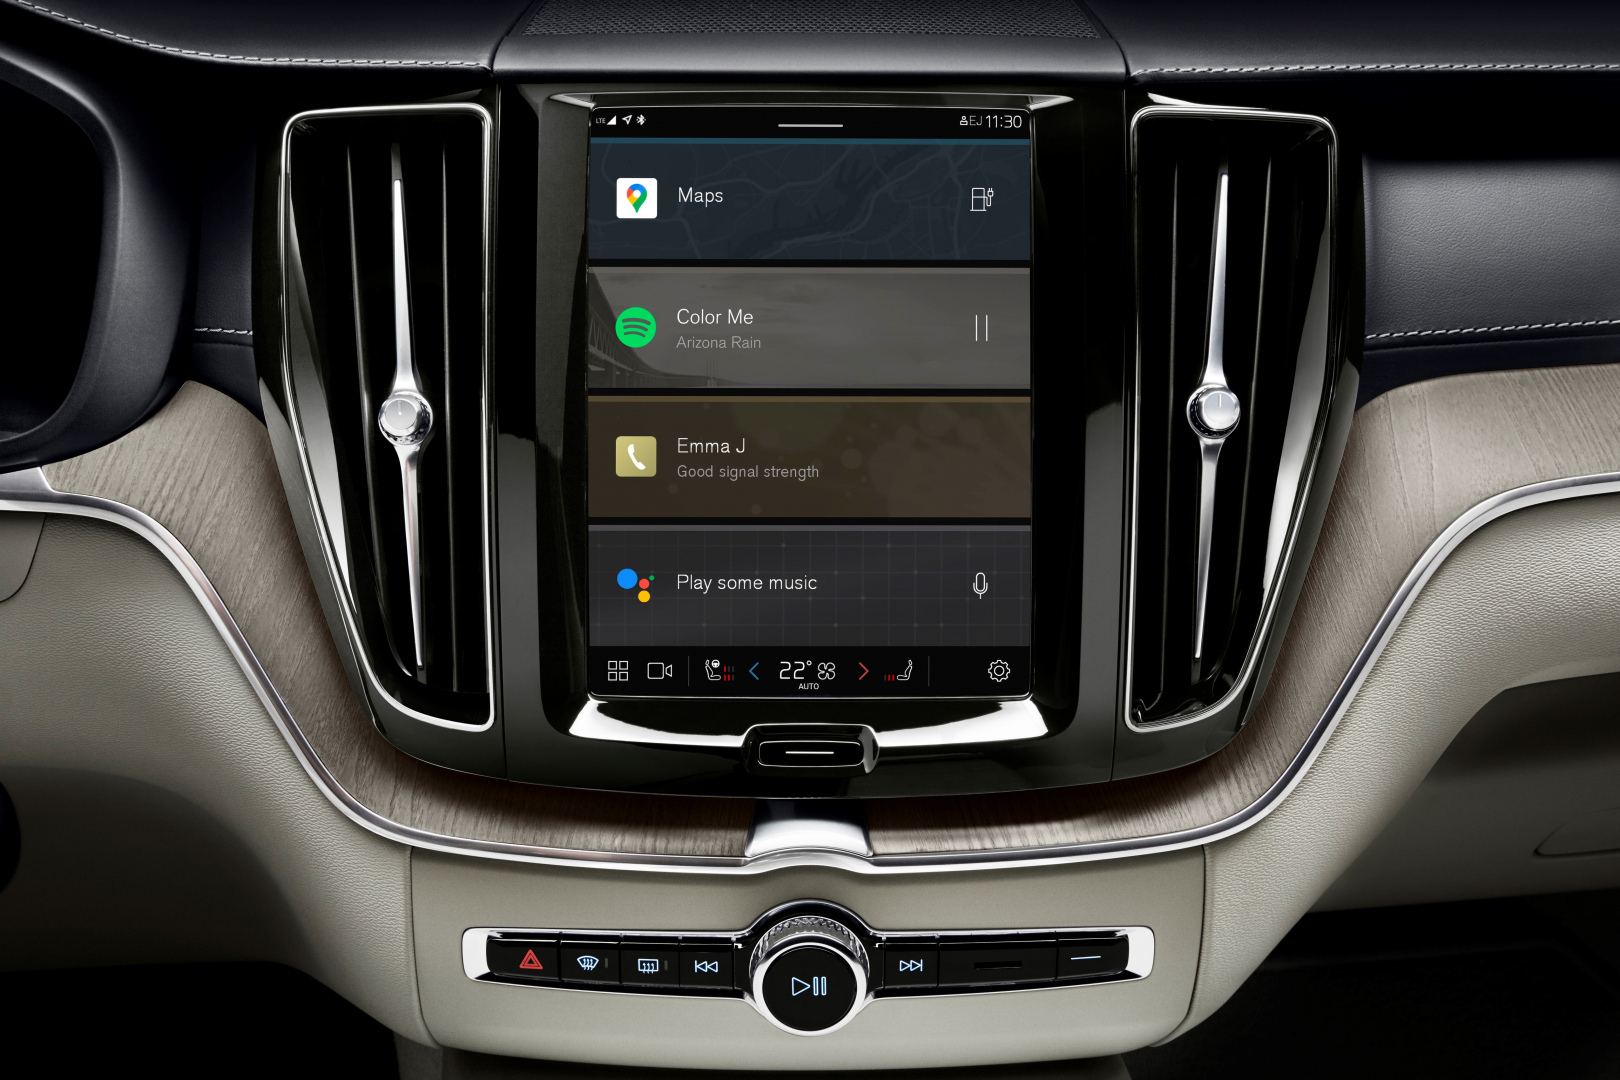 279245_Volvo_Cars_brings_infotainment_system_with_Google_built_in_to_more_models